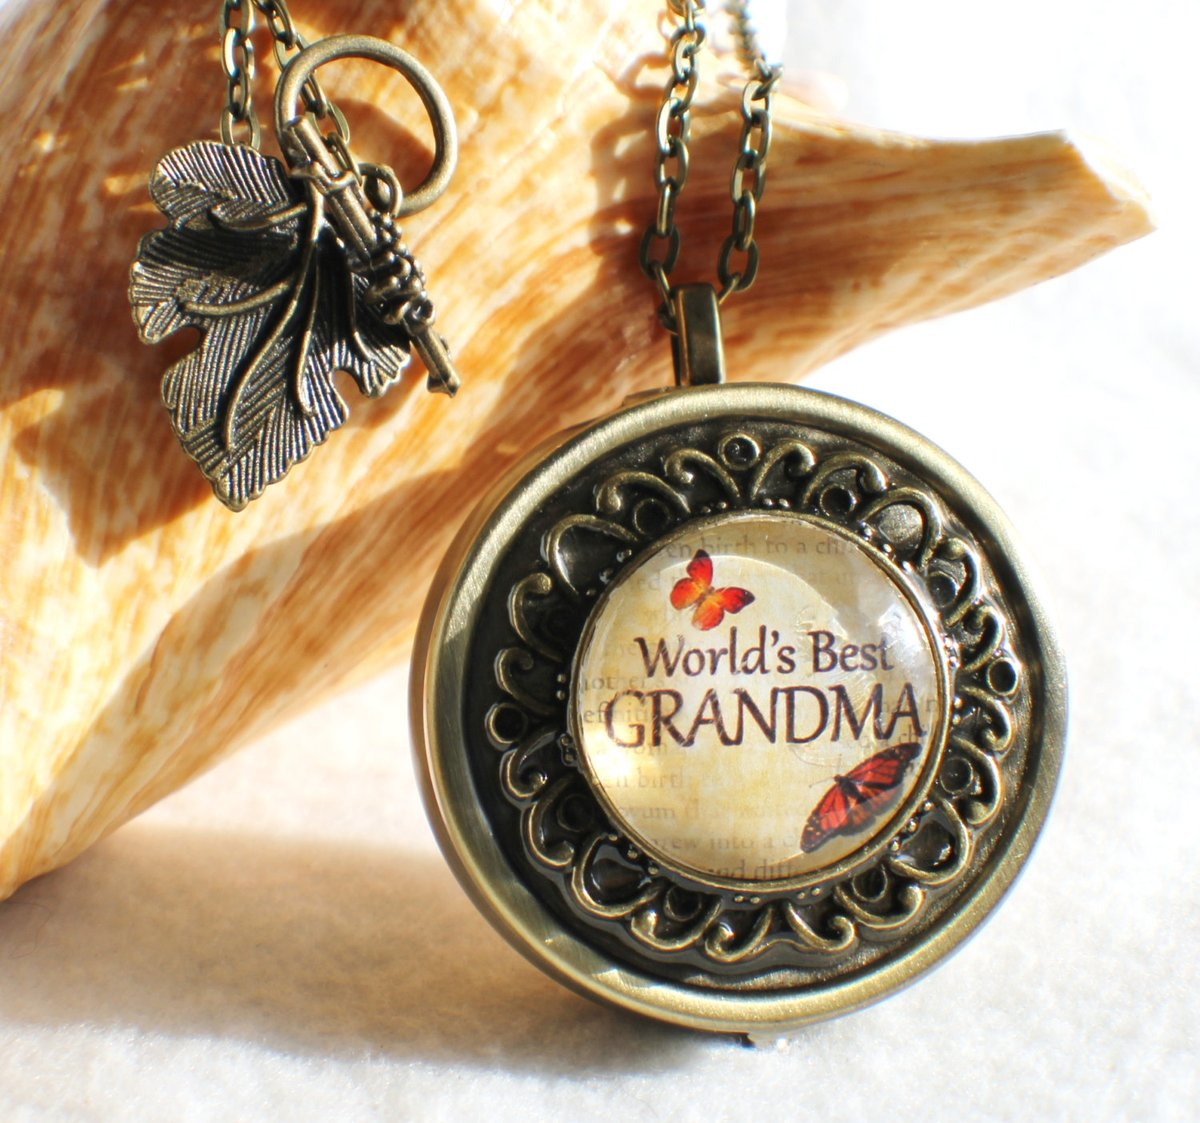 """Music box locket,  round locket with music box inside, in silver tone or bronze with """"World's Best Grandma"""" on cover.  #Handmadejewelry #Charsfavoritethings ##pottiteam #Etsy #RoundLocket"""